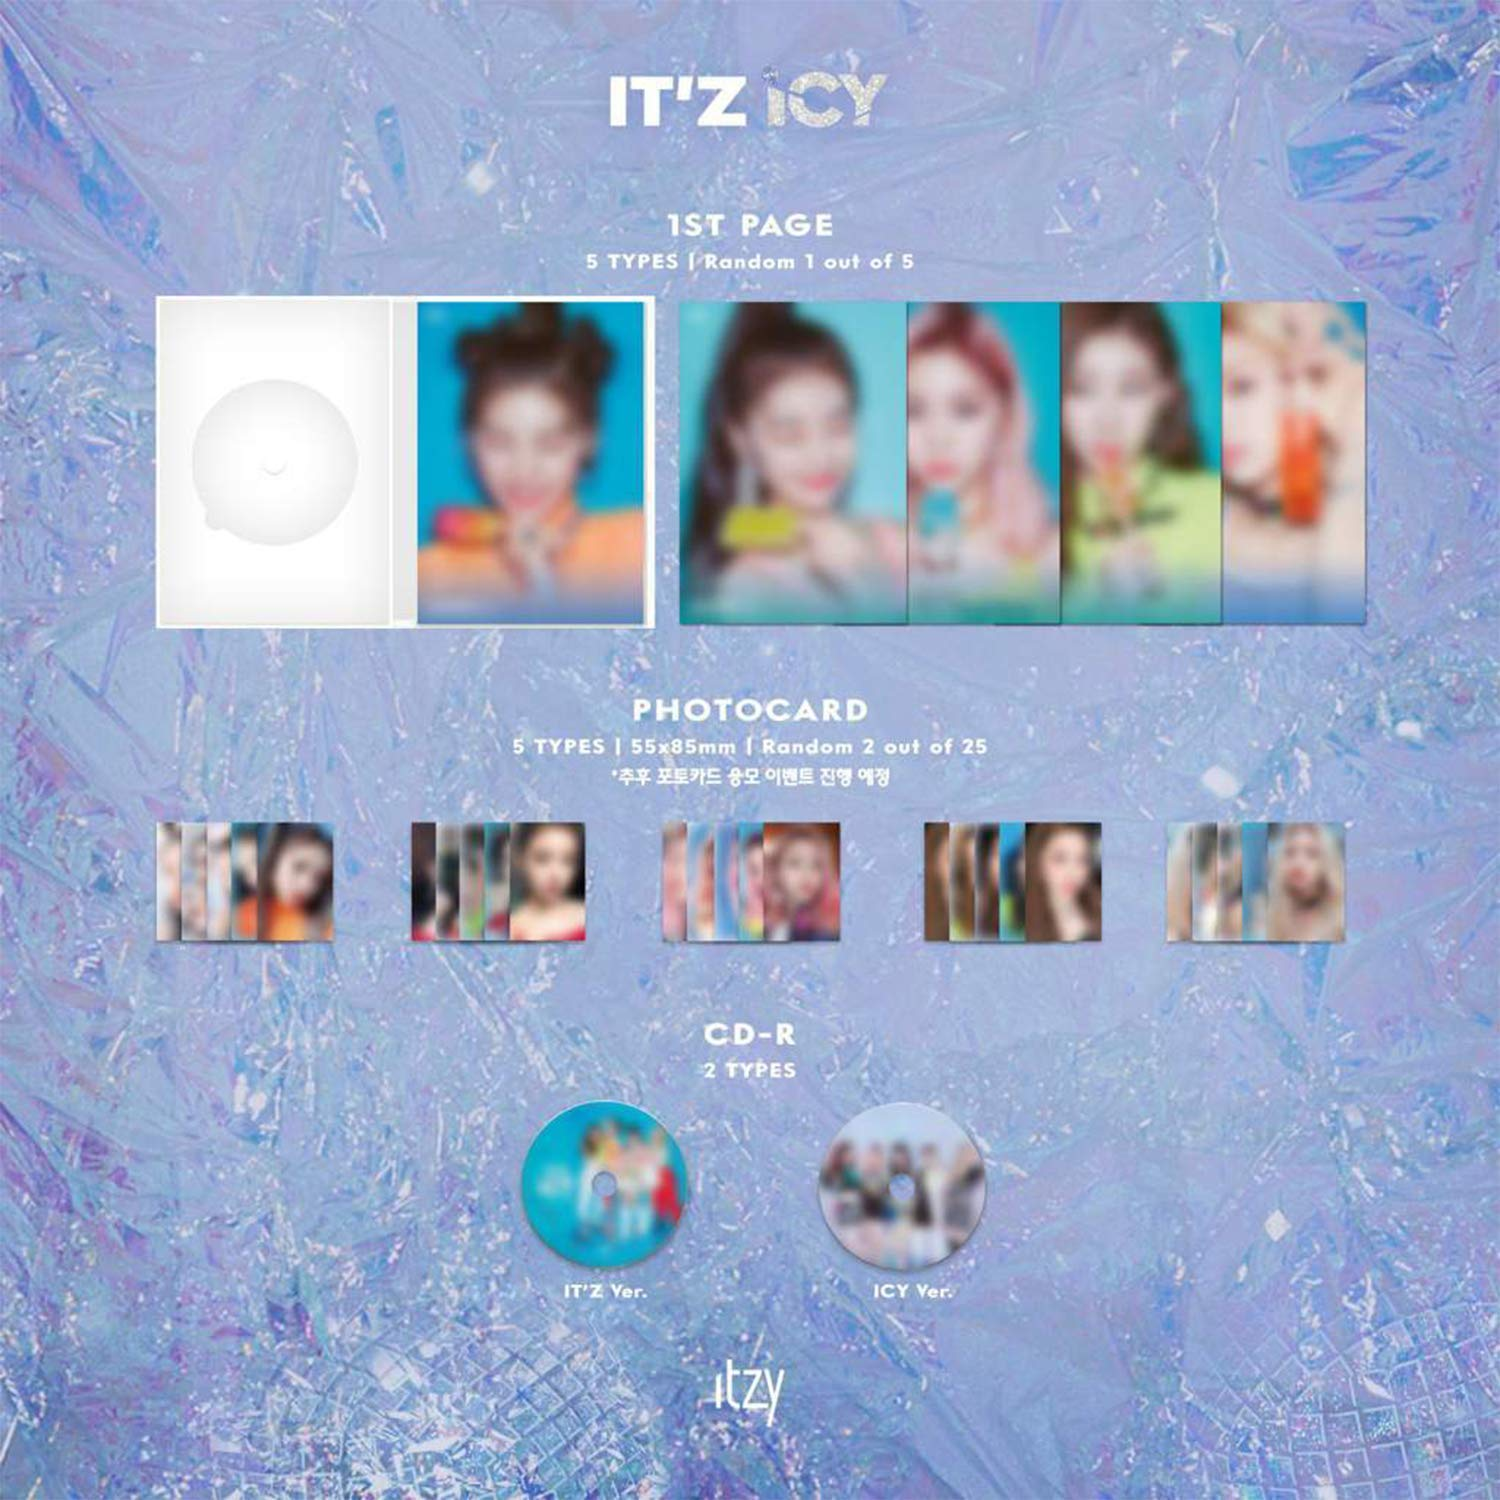 ITZY 1st Album - IT'Z ICY [ ICY ver. ] CD + Photobook + Photocards + IT'Z  DIFFERENT BOOKLET&PHOCARD + POSTCARD SET + 2TZY STICKER + OFFICIAL POSTER +  FREE GIFT - ITZY: Amazon.de: Musik